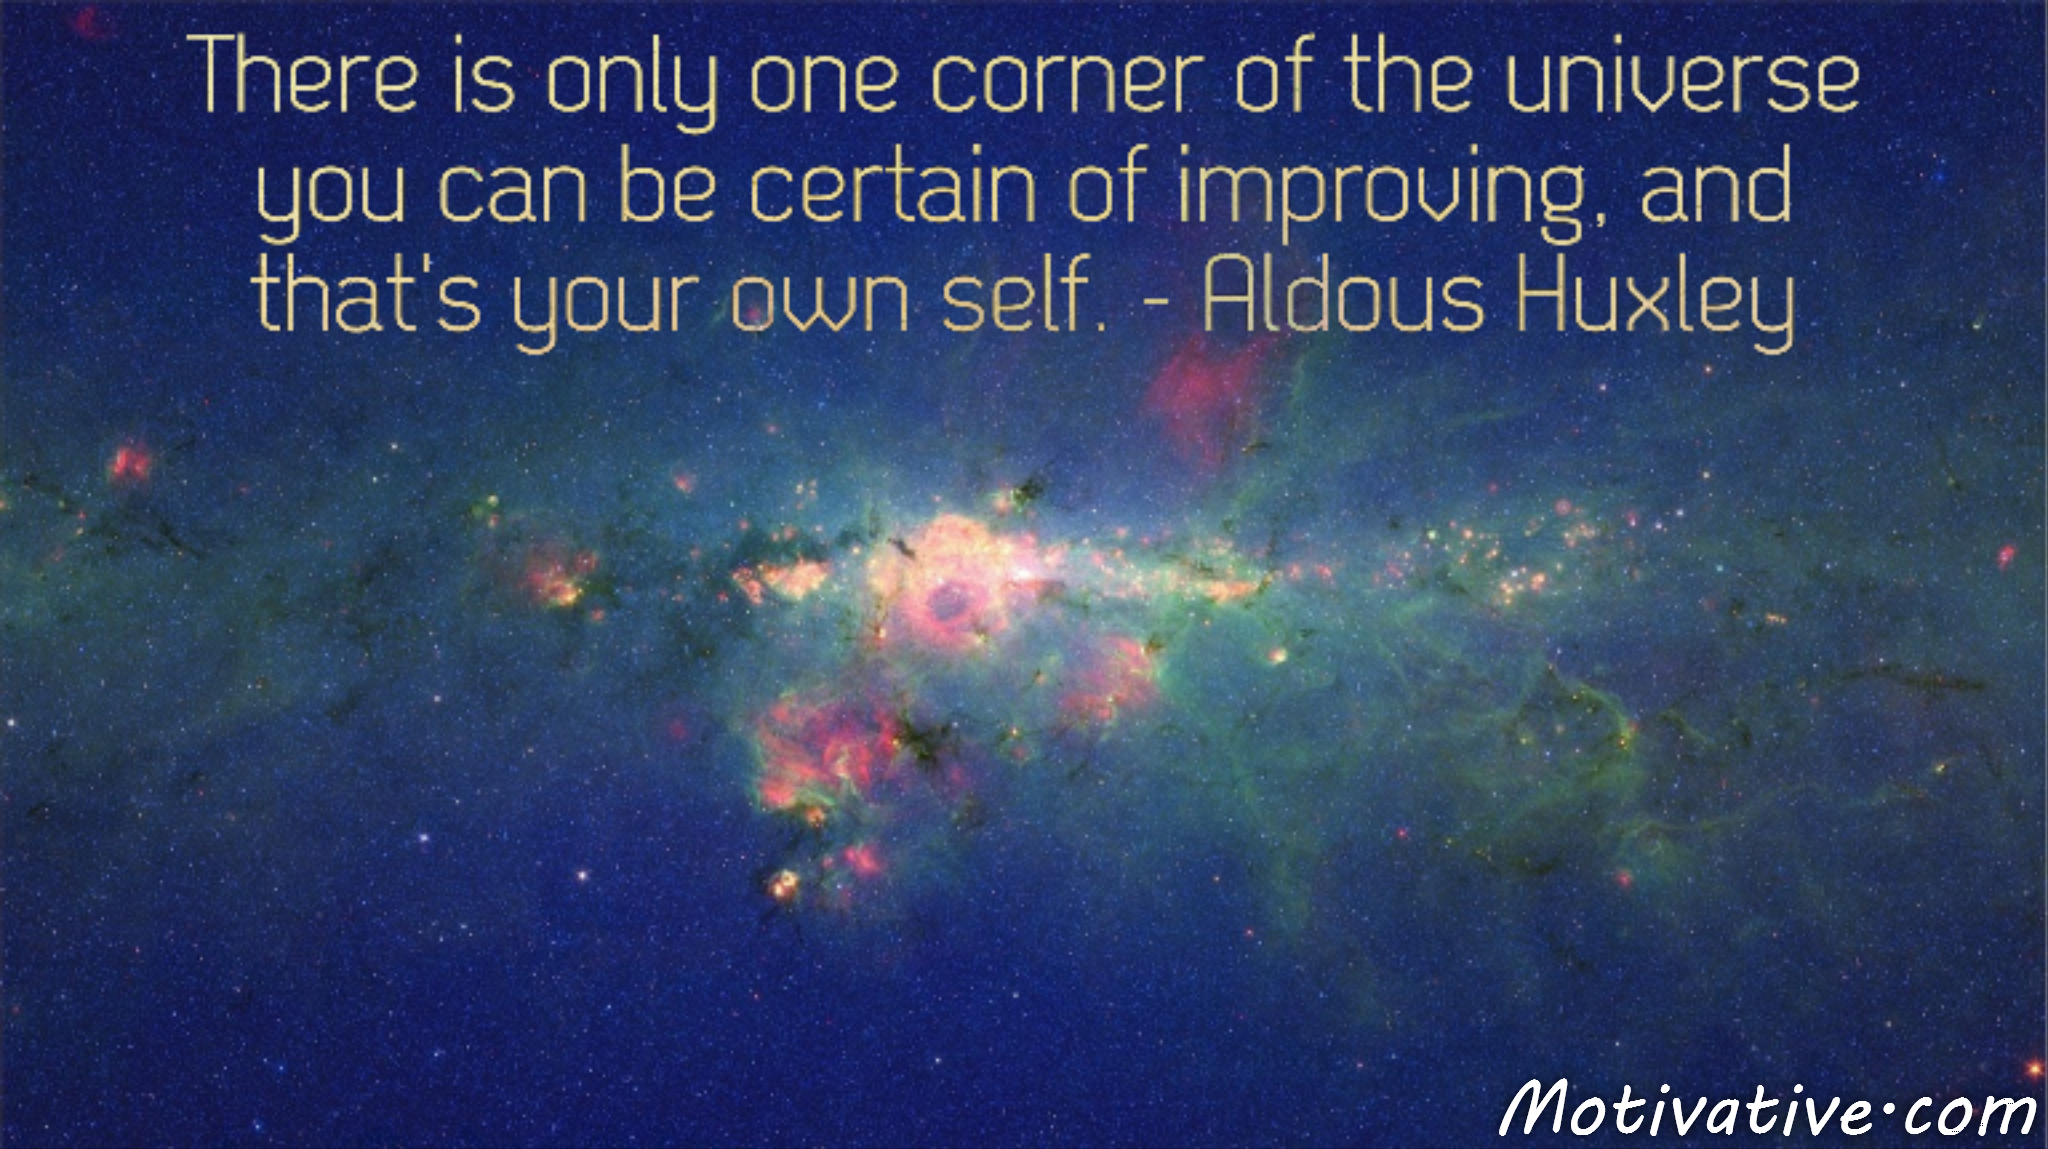 There is only one corner of the universe you can be certain of improving, and that's your own self. – Aldous Huxley